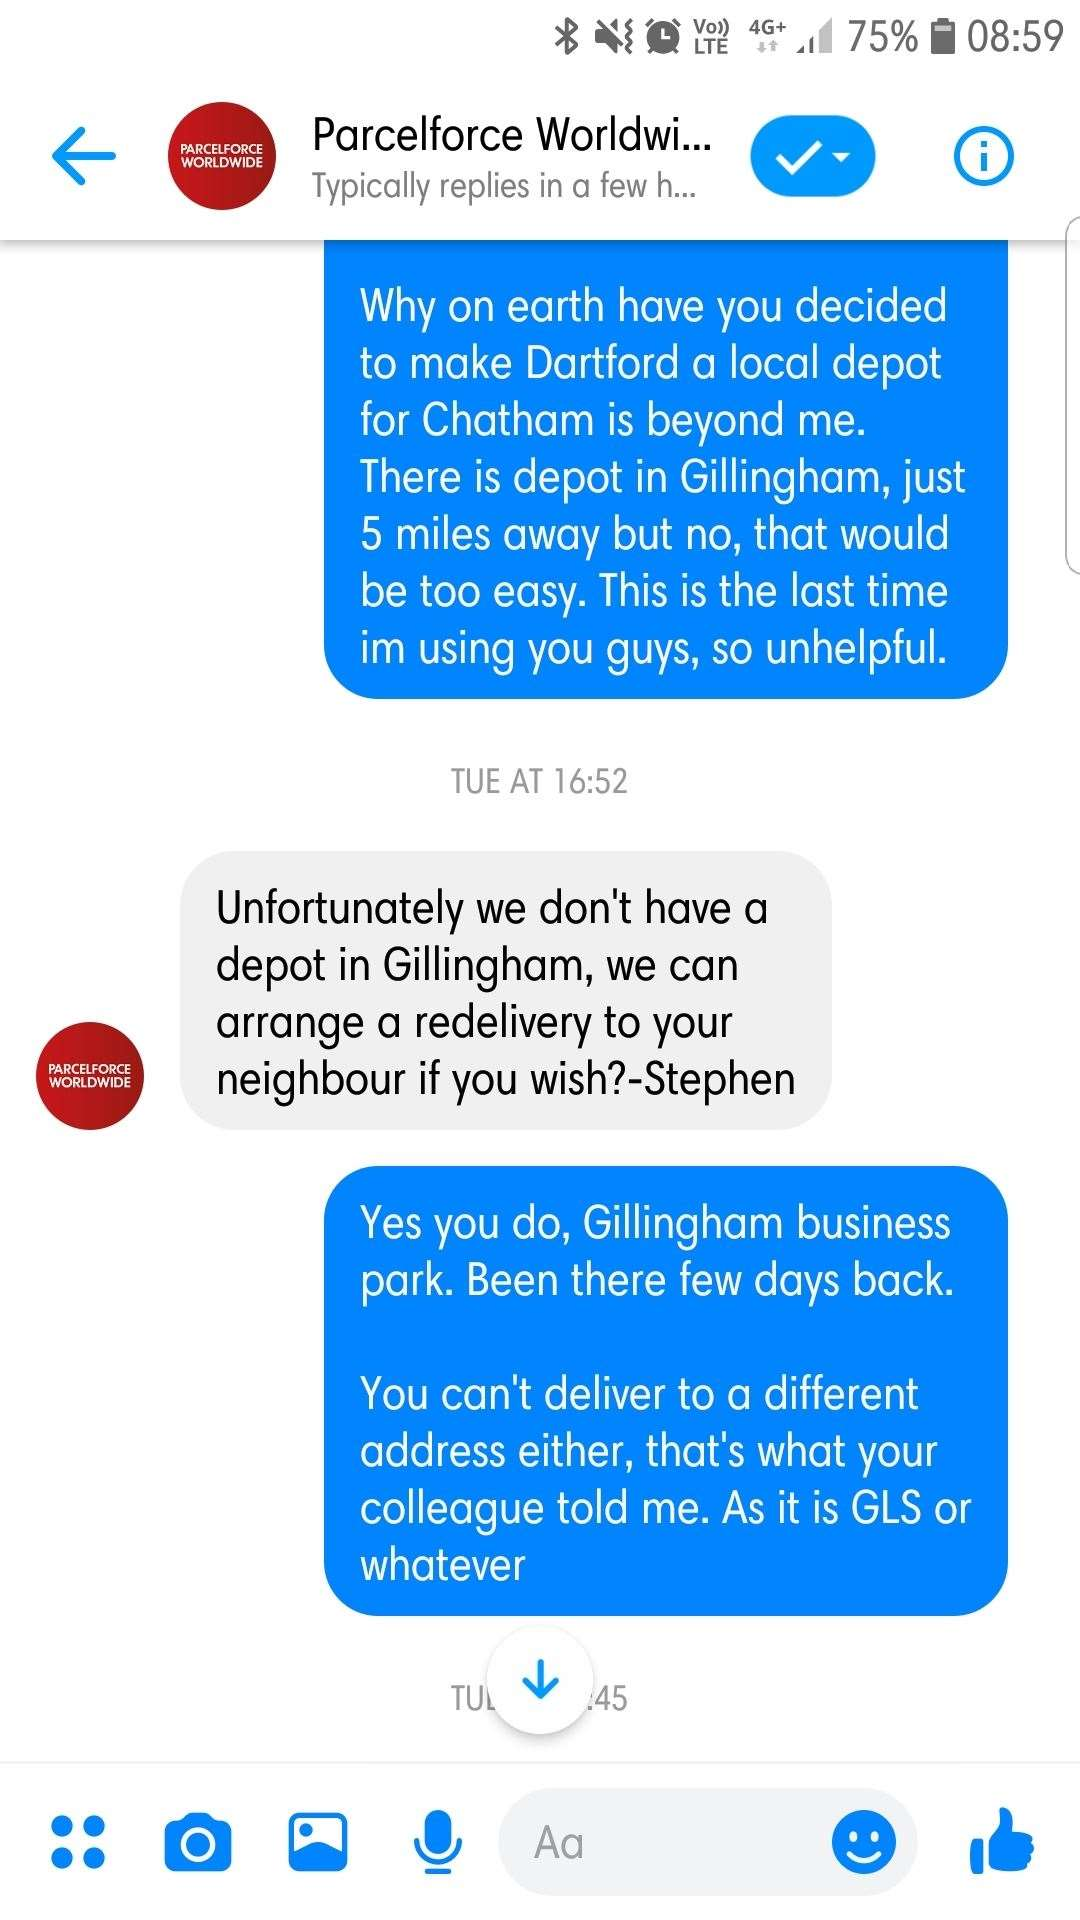 Parcelforce staff said they didn't have a depot in Gillingham